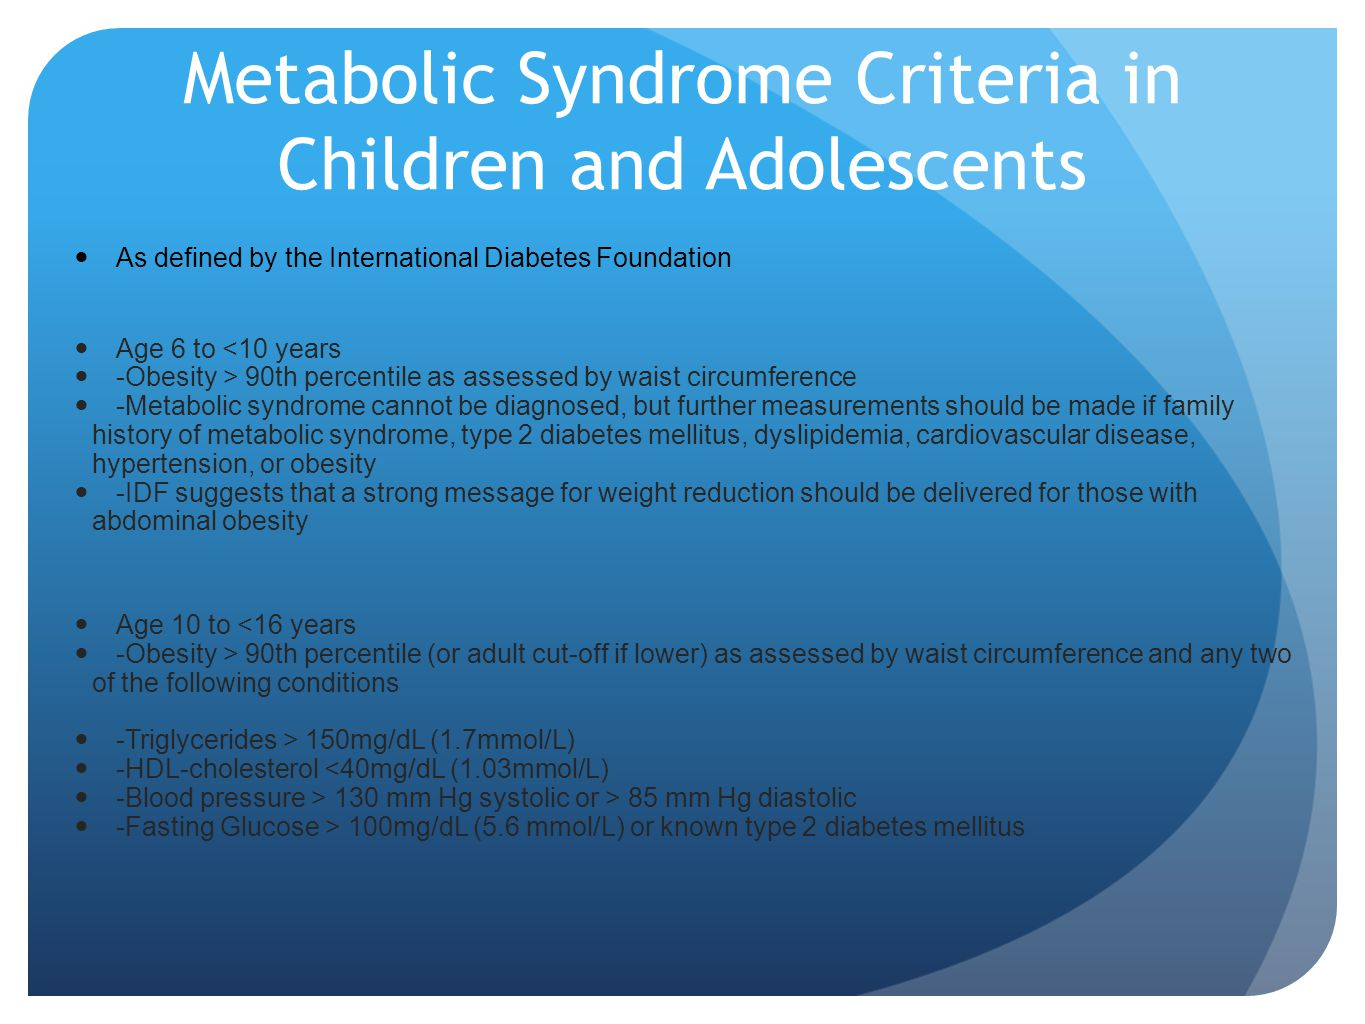 Metabolic Syndrome Criteria in Children and Adolescents